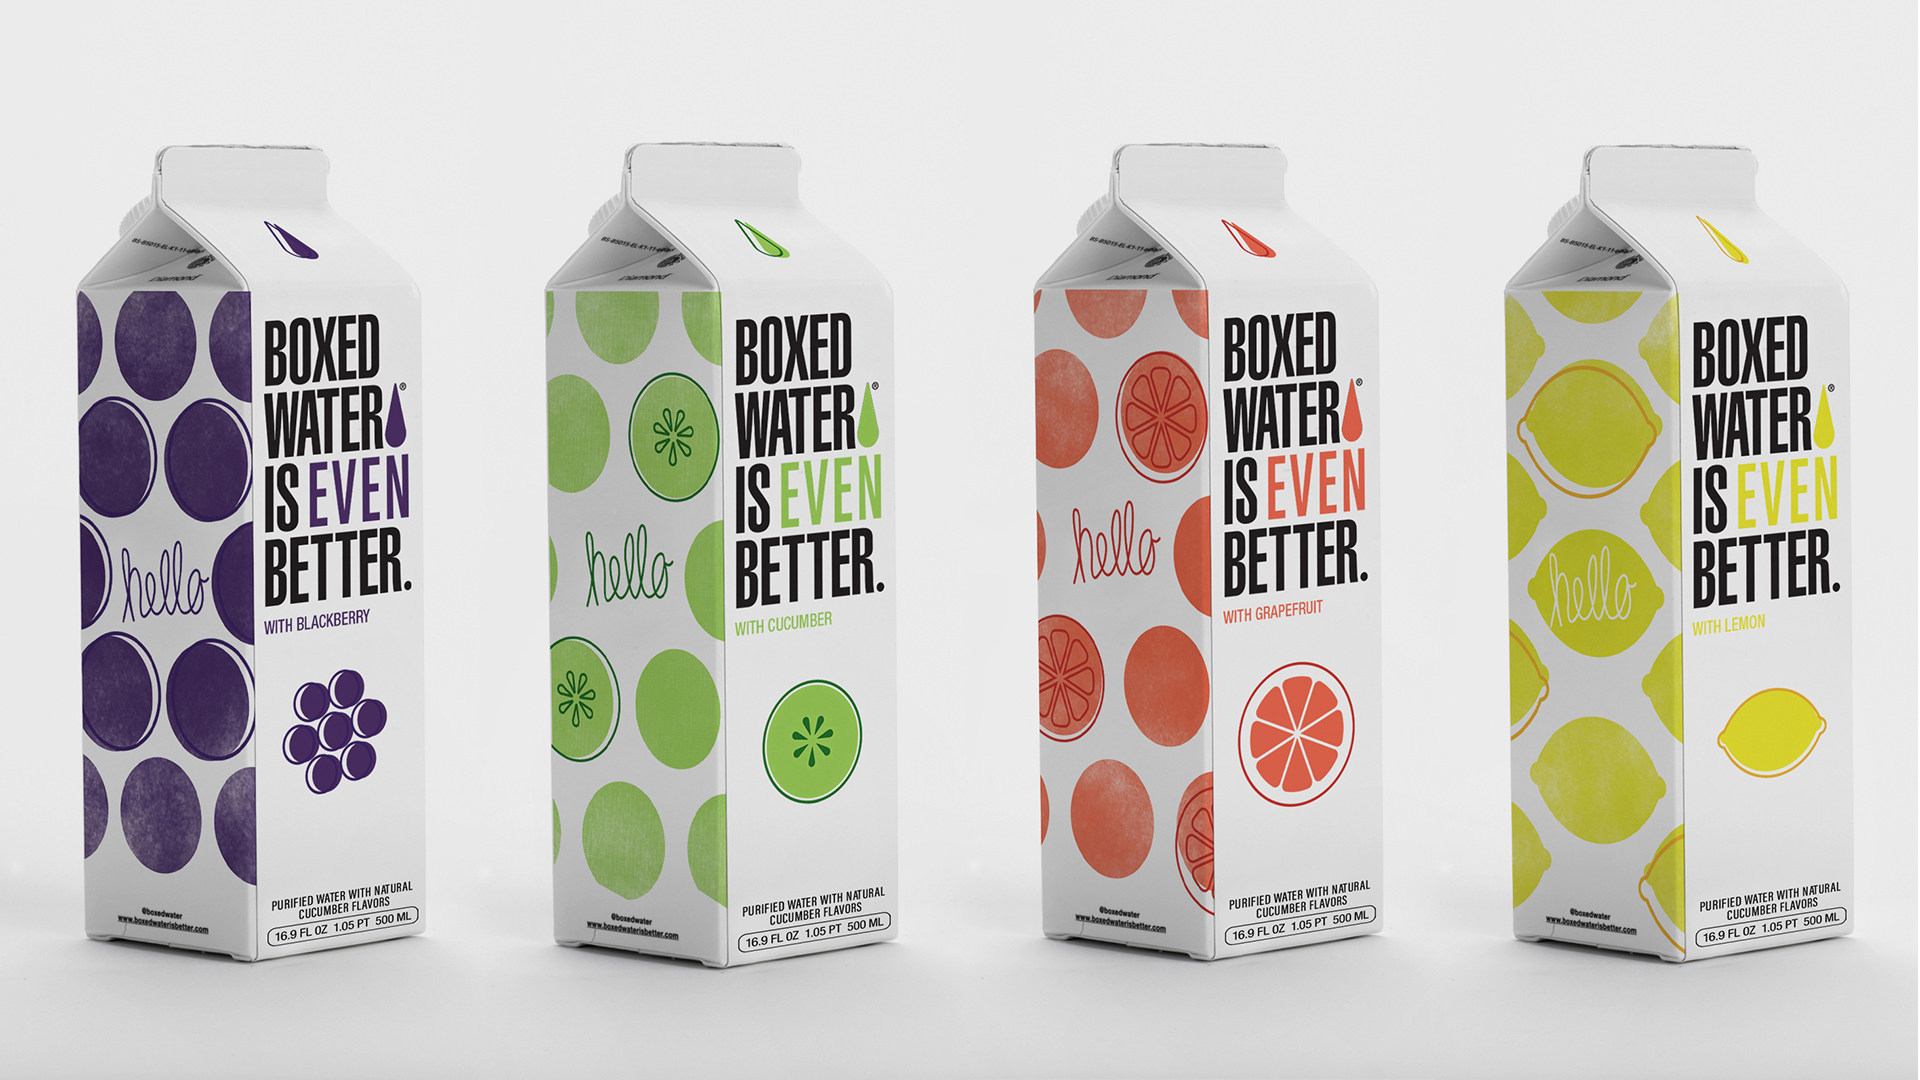 Boxed Water Is Better® Launches Four New Flavors Responding to Mounting Consumer Demand | PR Newswire